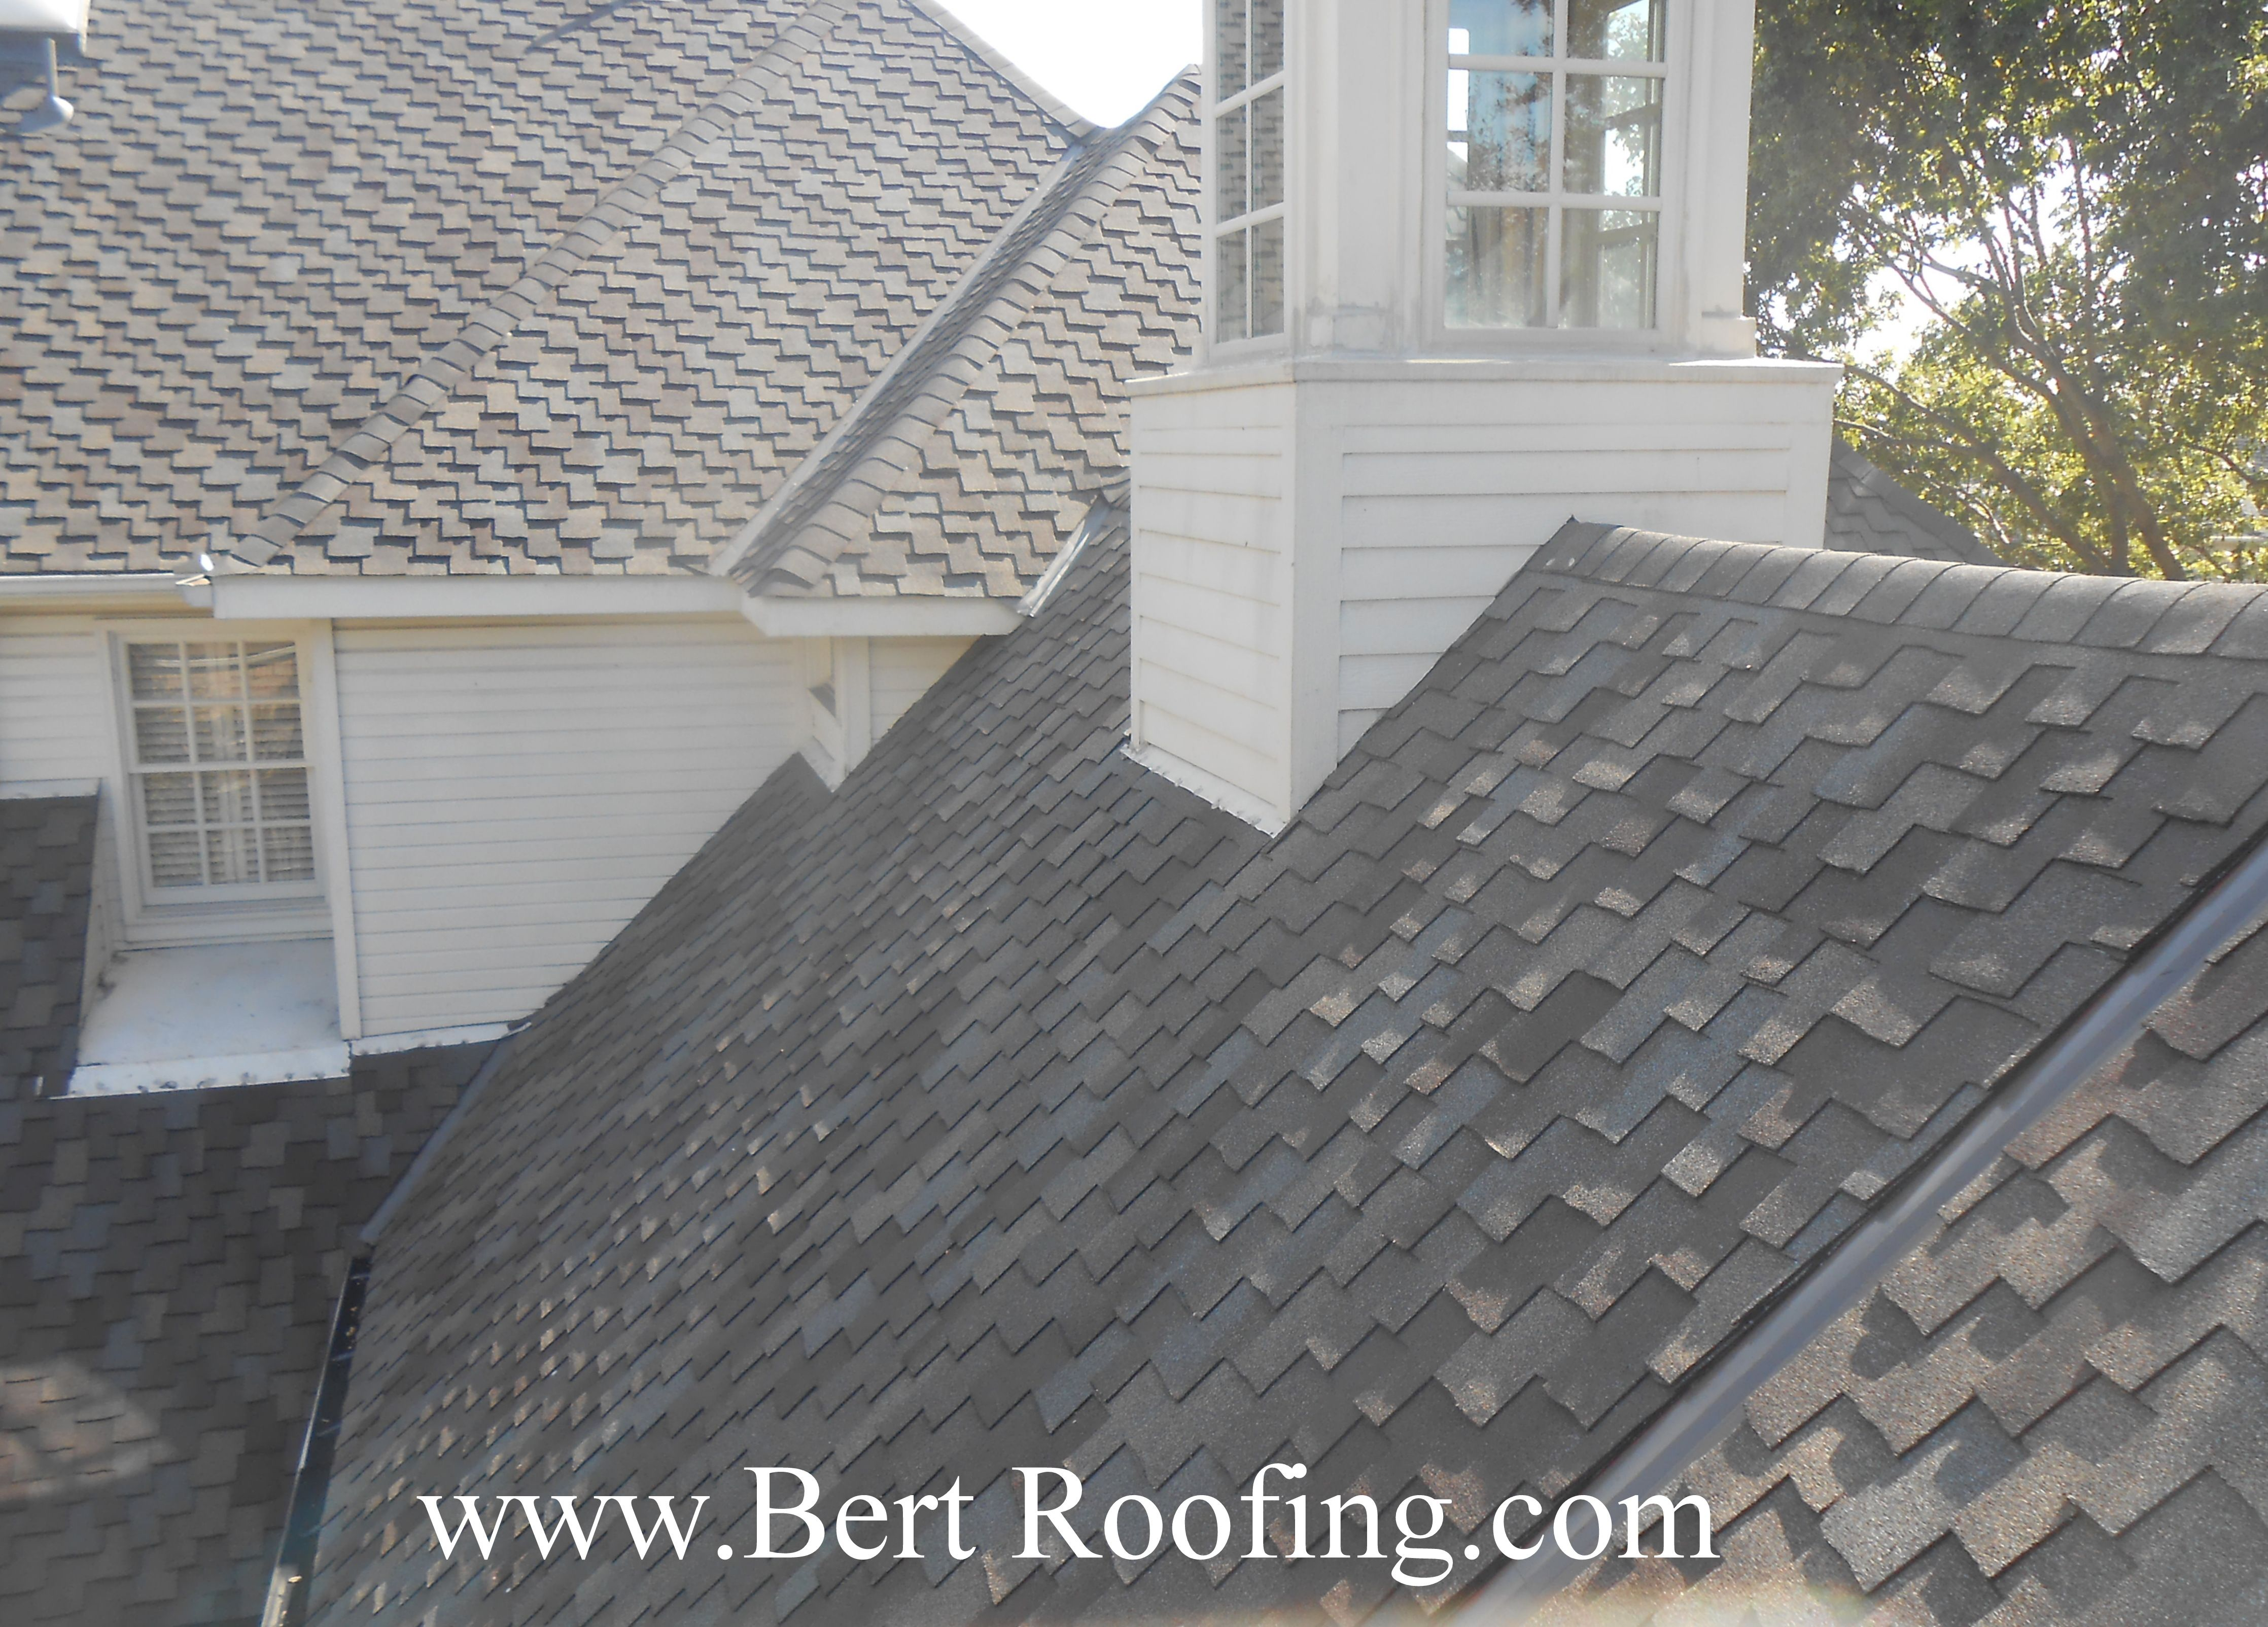 Certainteed Presidential Composition Shingle Color Weathered Wood Installed By Bert Roofing Inc Of Dallas In Wylie House Exterior Roofing Roofing Contractors